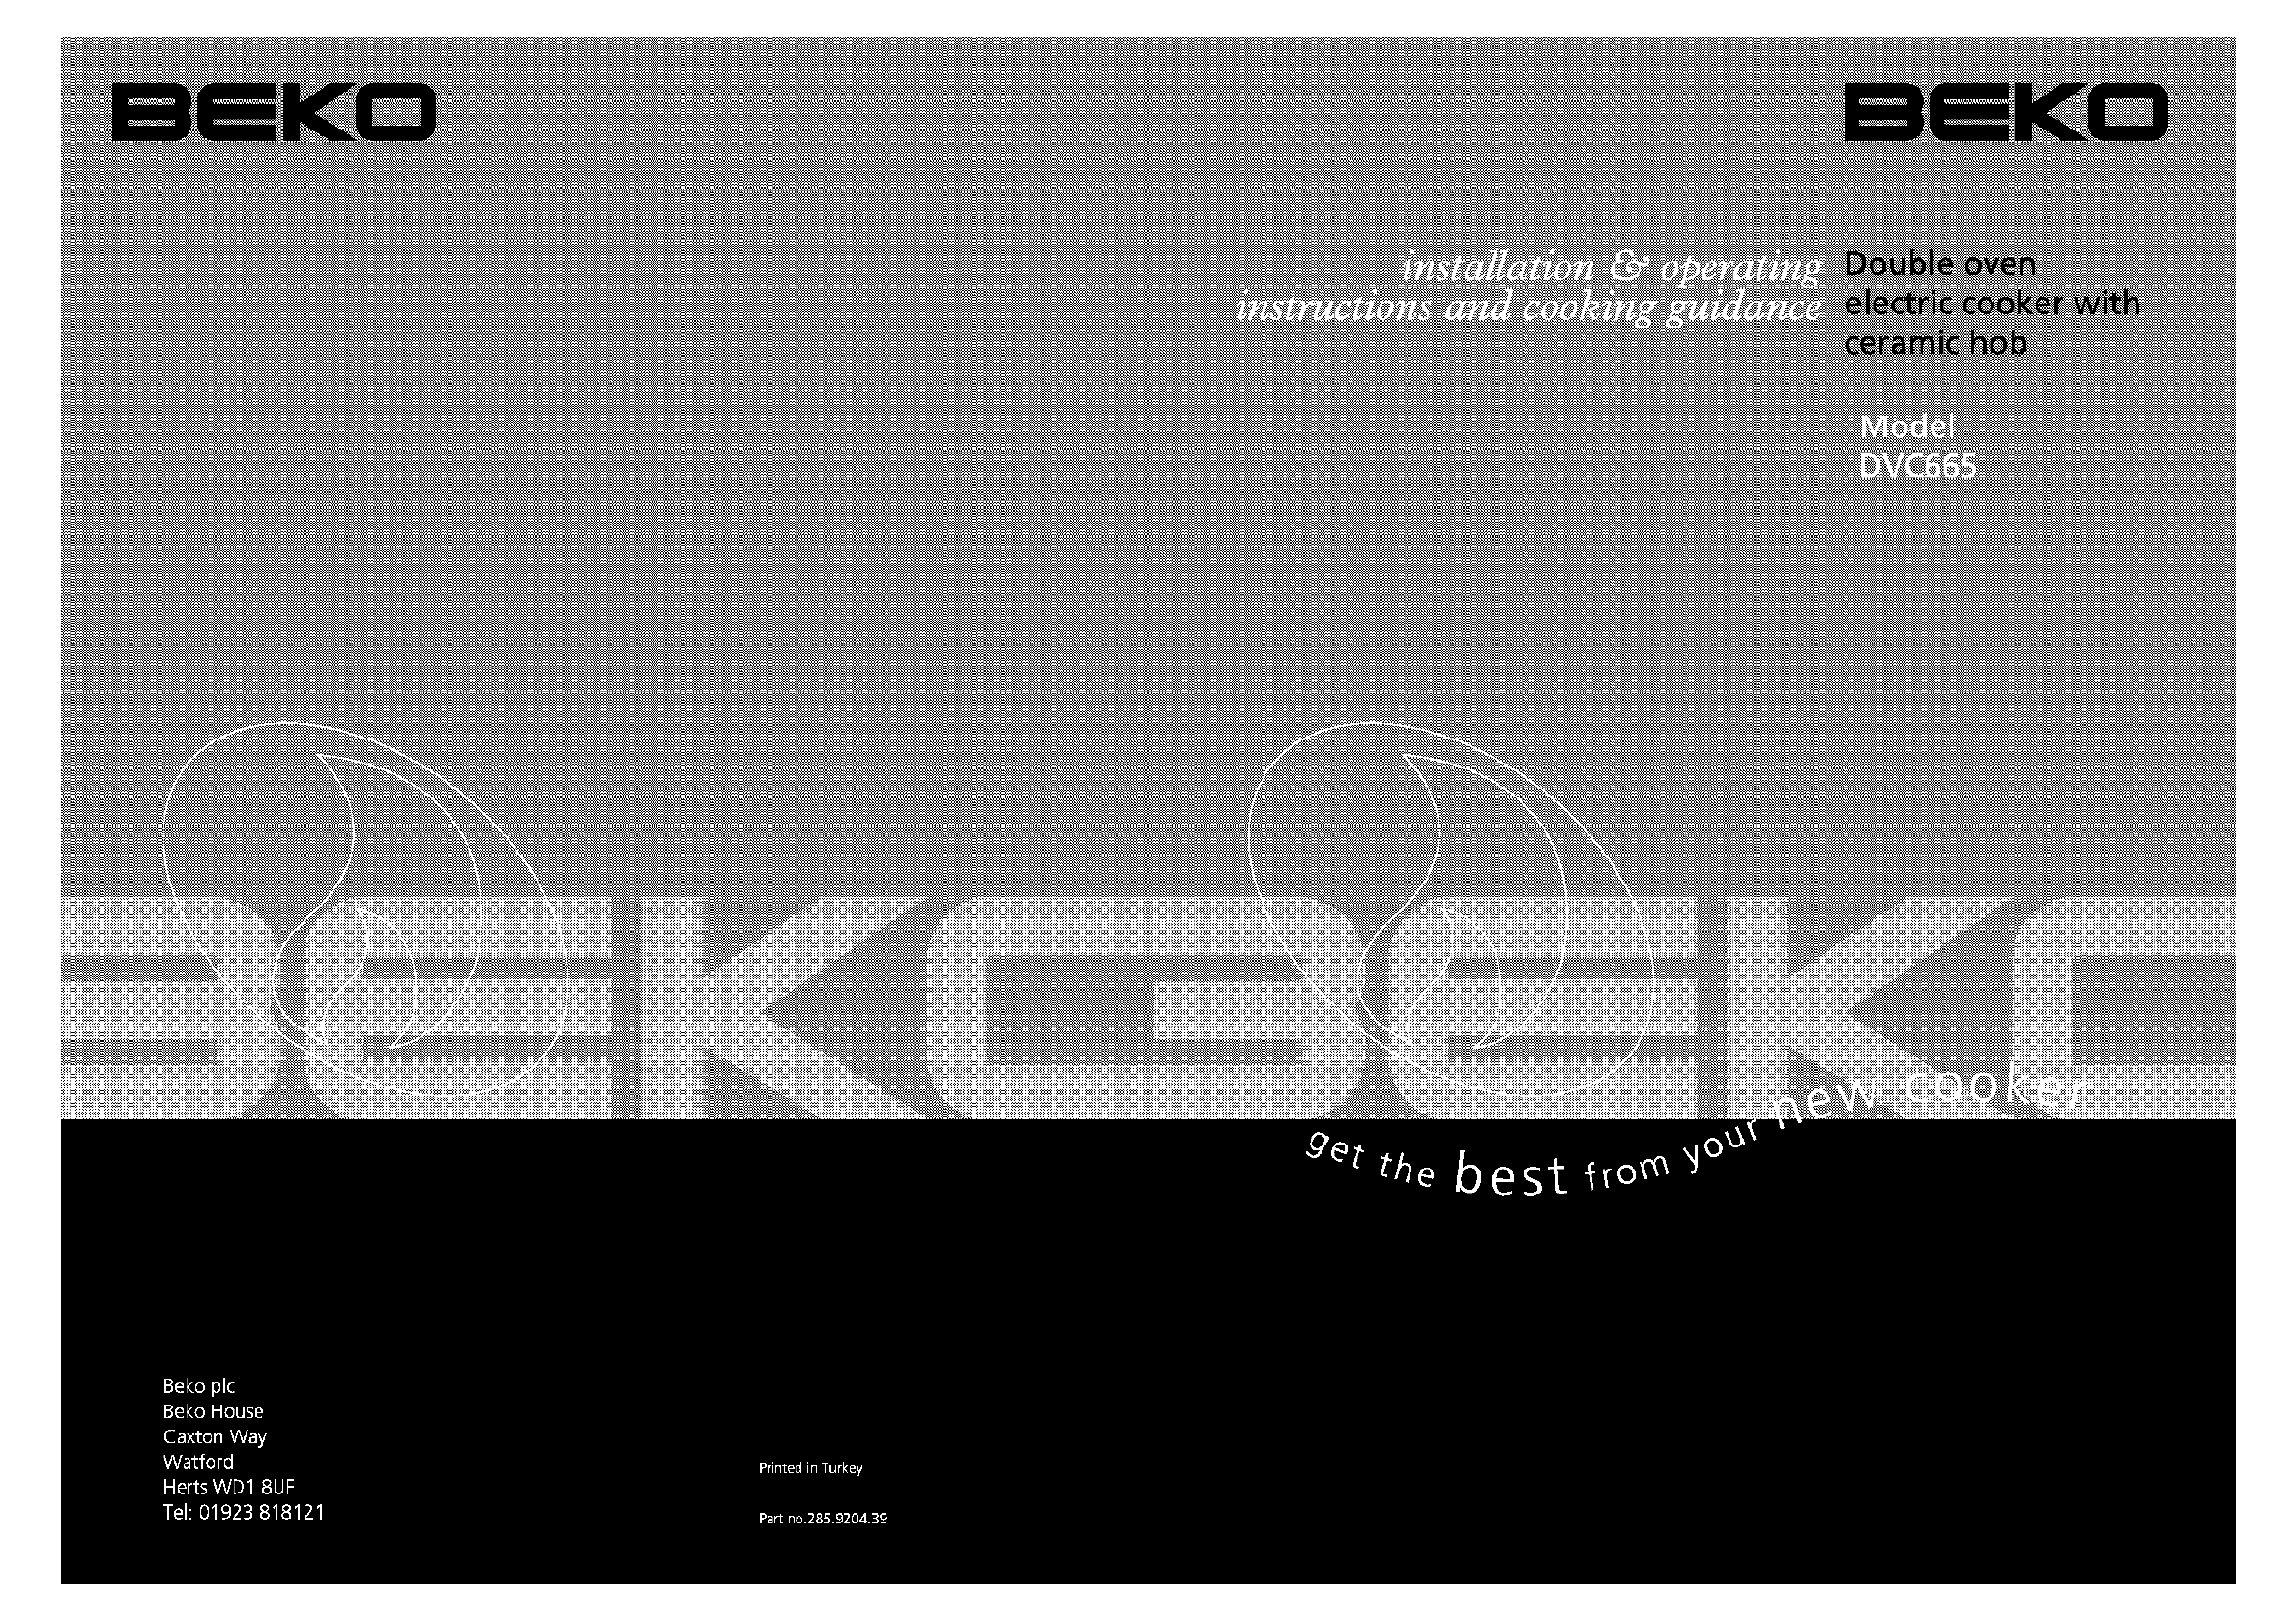 Beko Double Oven DVC665 User Guide | ManualsOnline.com